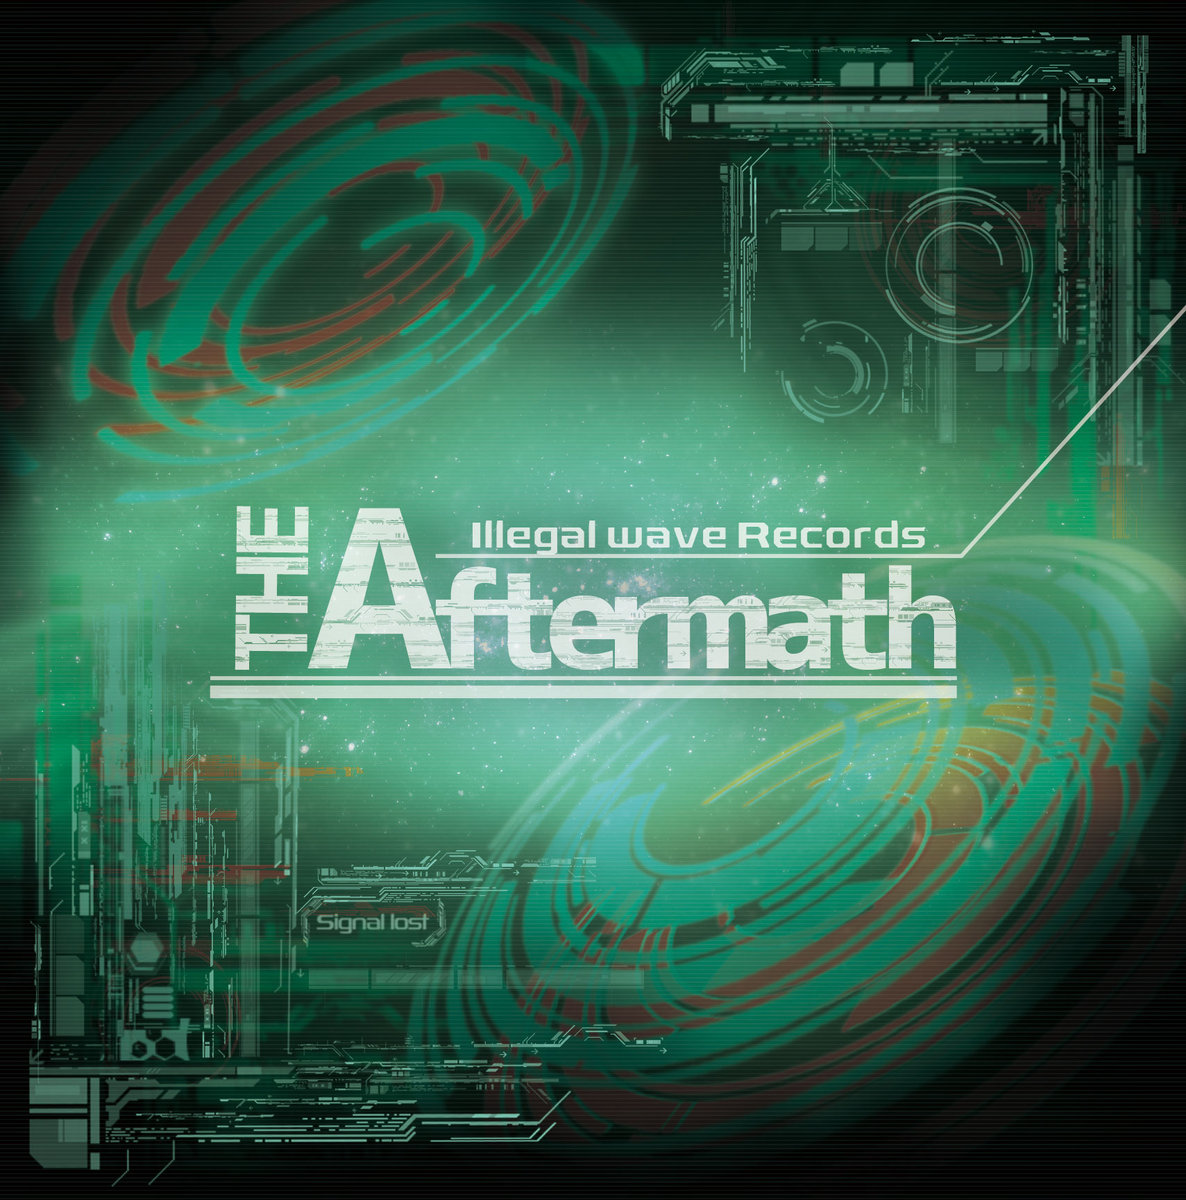 The Aftermath | Illegal wave Records